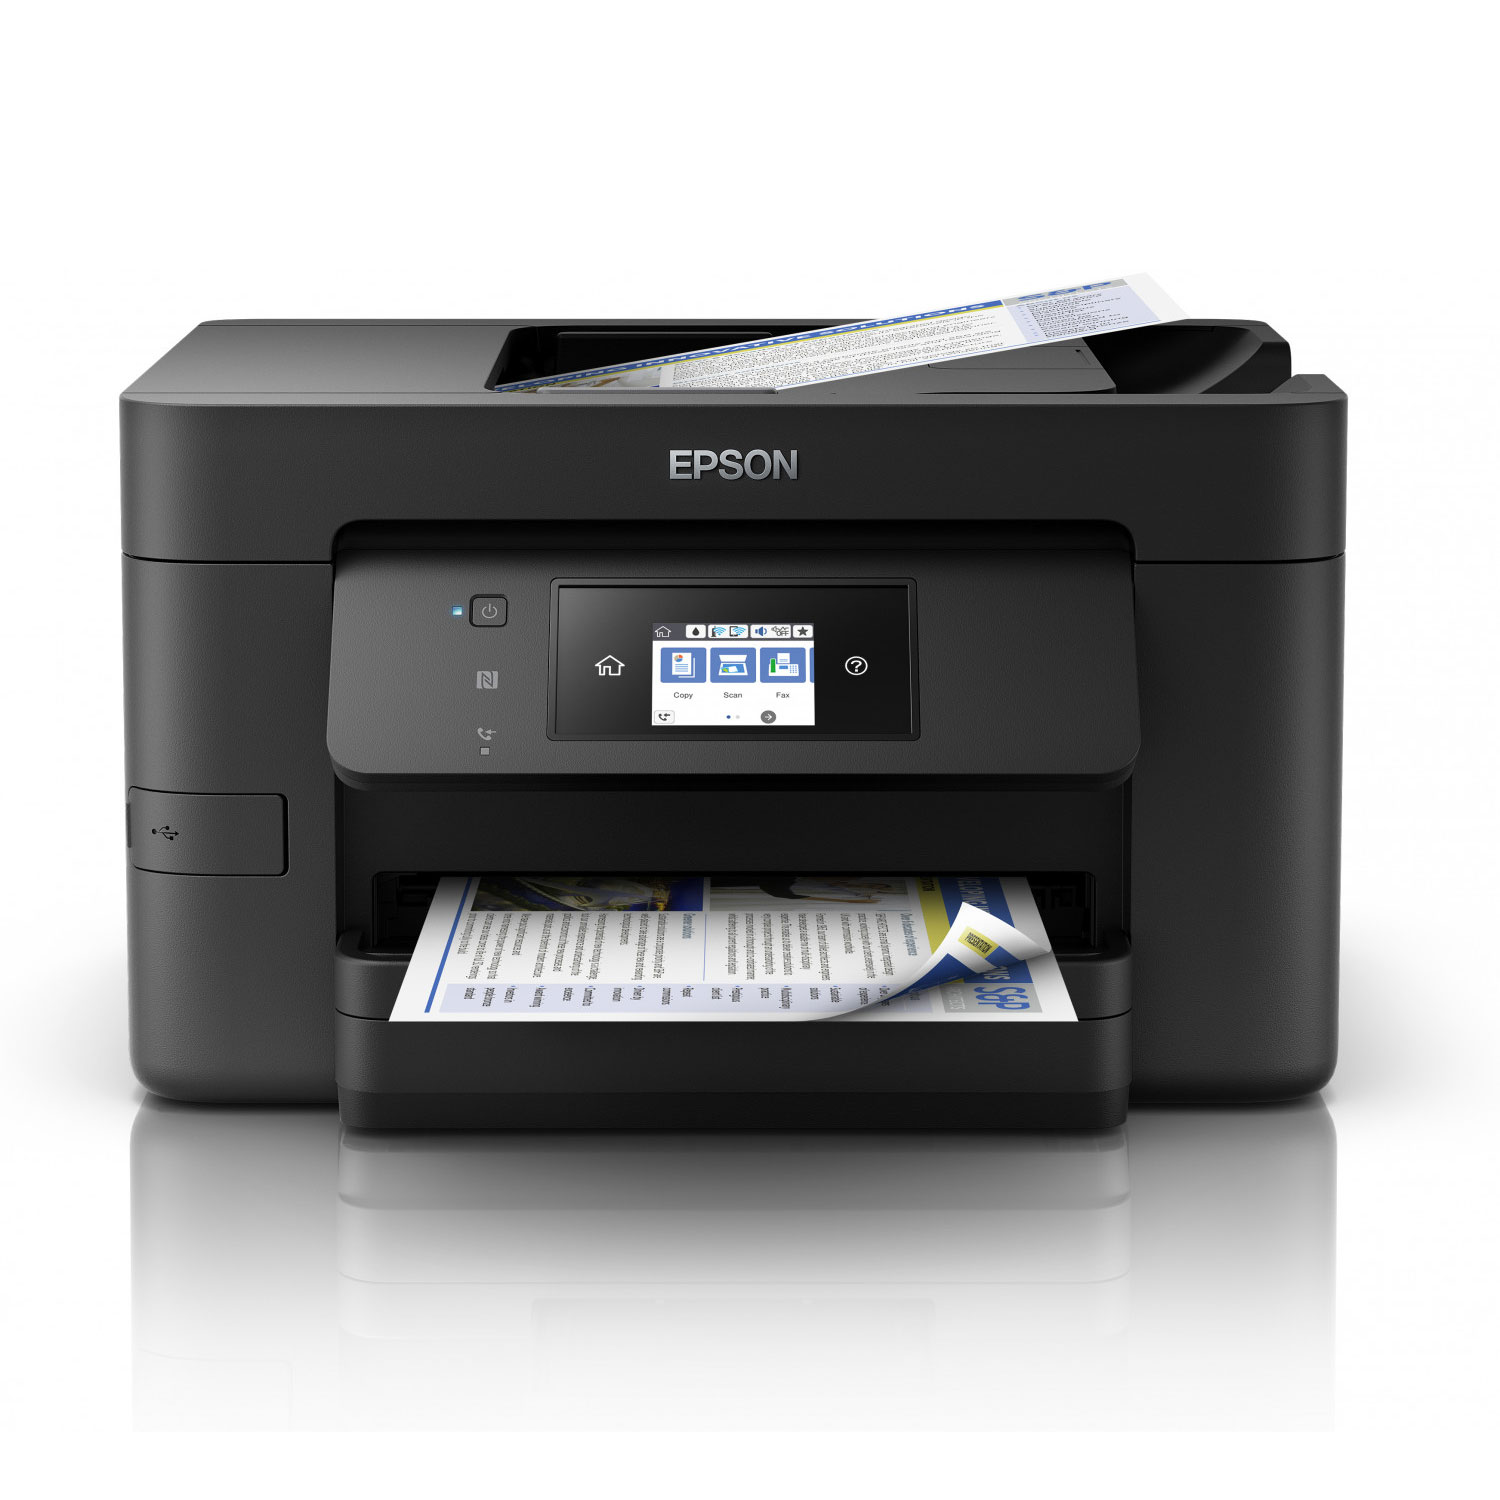 epson workforce wf 3720dwf imprimante multifonction. Black Bedroom Furniture Sets. Home Design Ideas